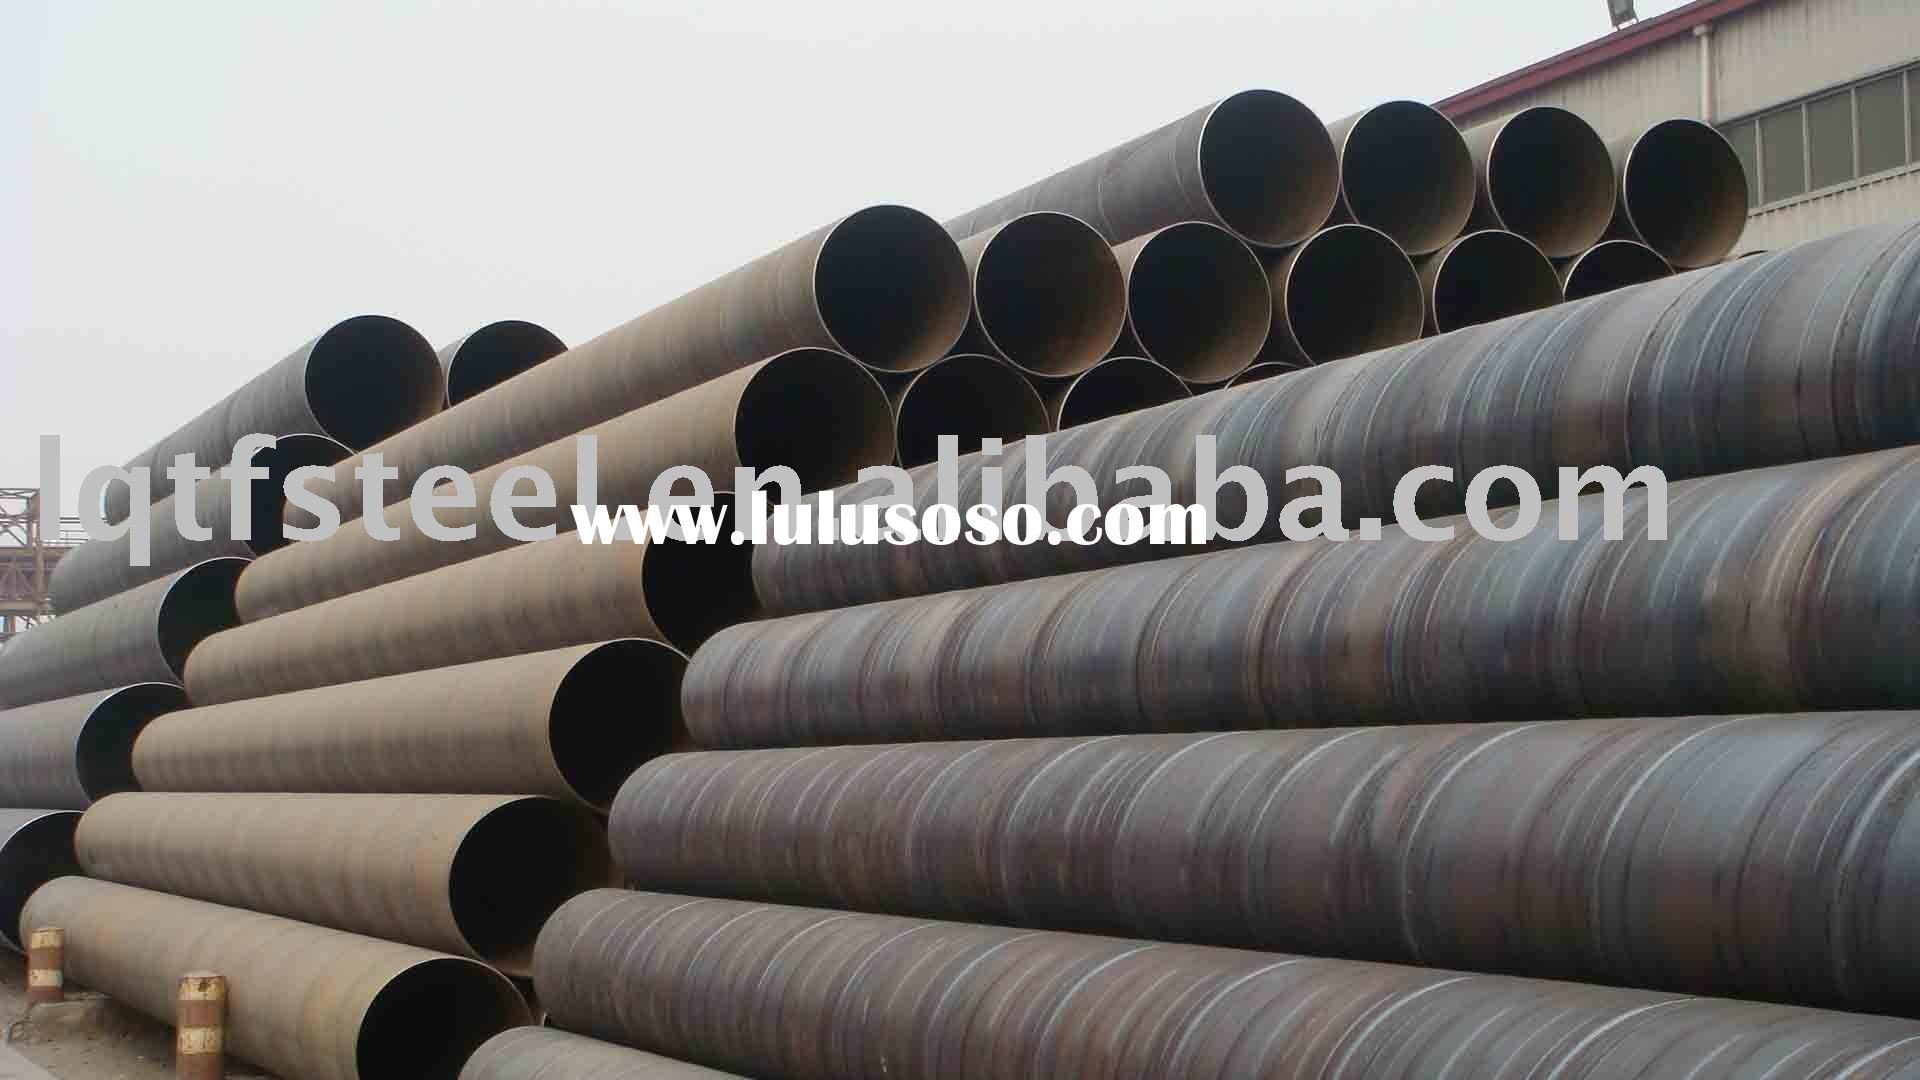 Erw Steel Pipes : Lqtf high yield strength mild steel angle bar for sale